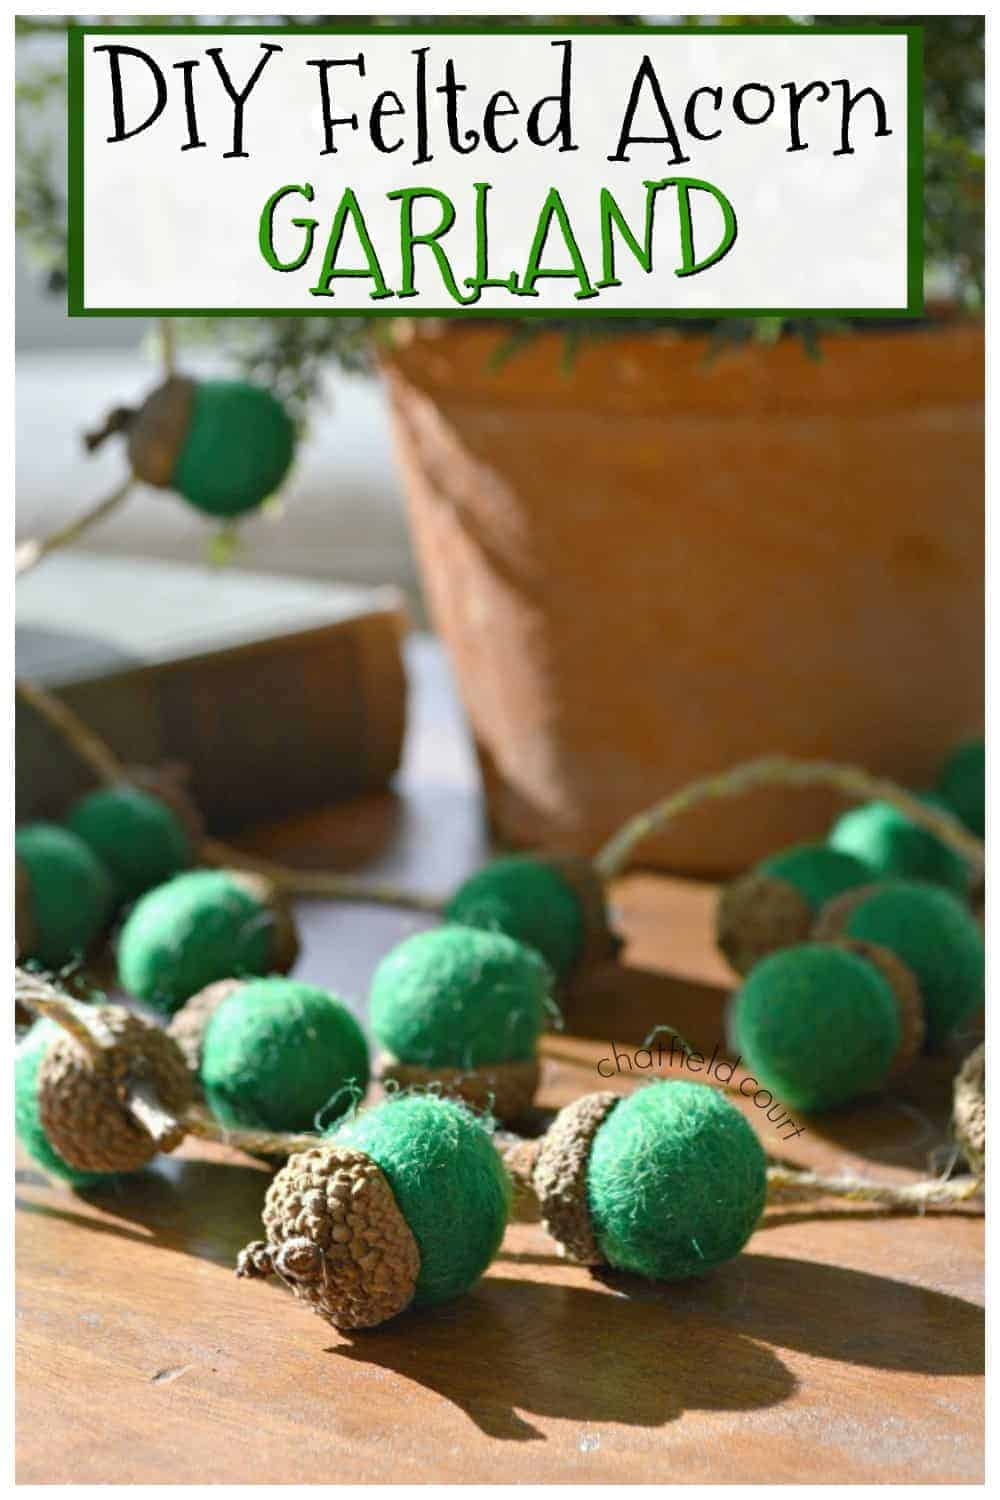 felted green acorn garland on cutting board with large graphic